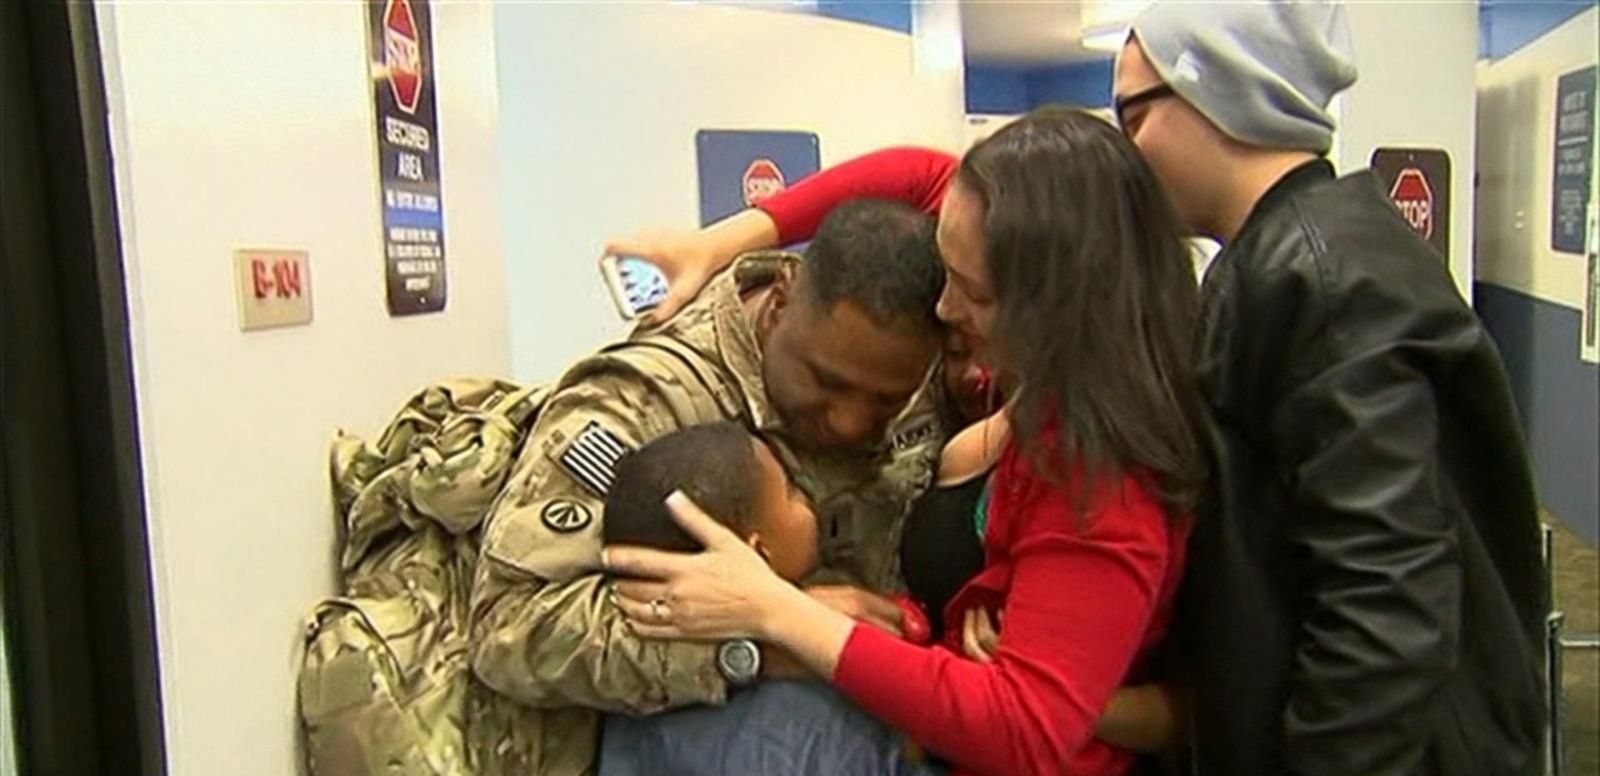 VIDEO: Loved Ones Home Just in Time for the Holidays